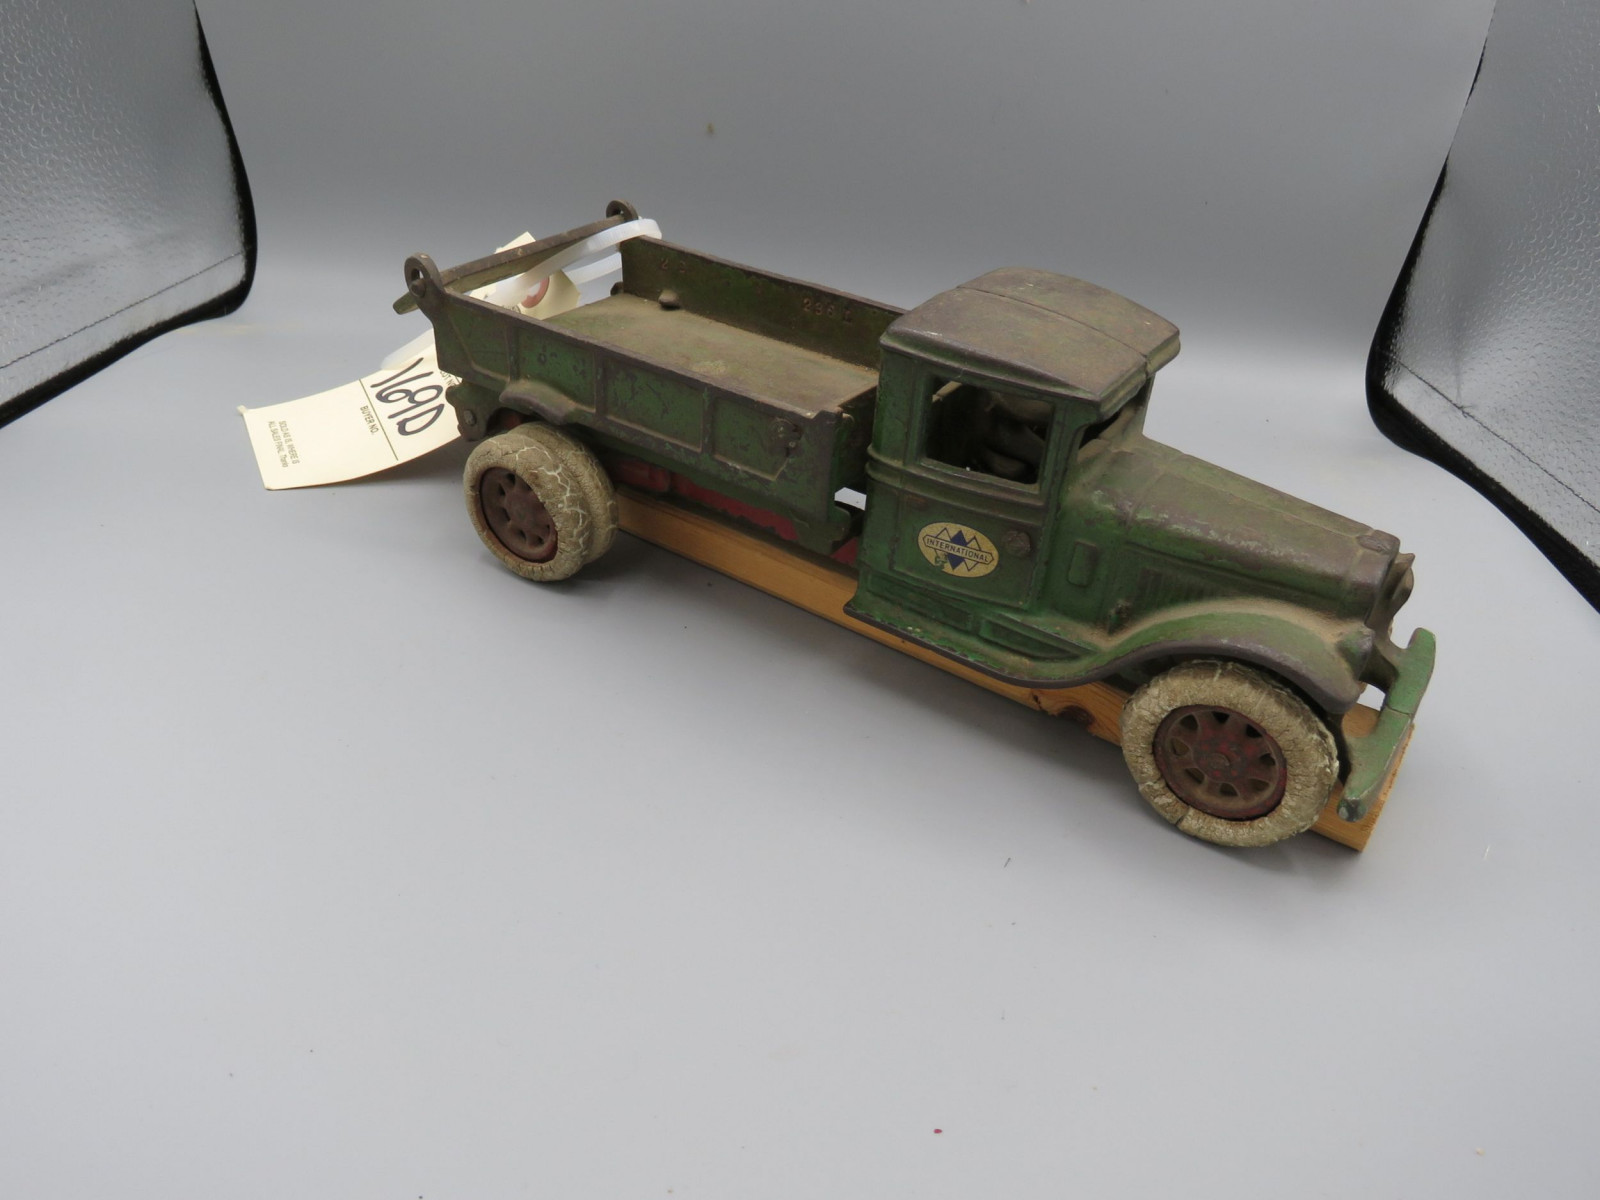 Arcade IH Truck @1931 Cast Iron Truck Approx. 10 inches - Image 1